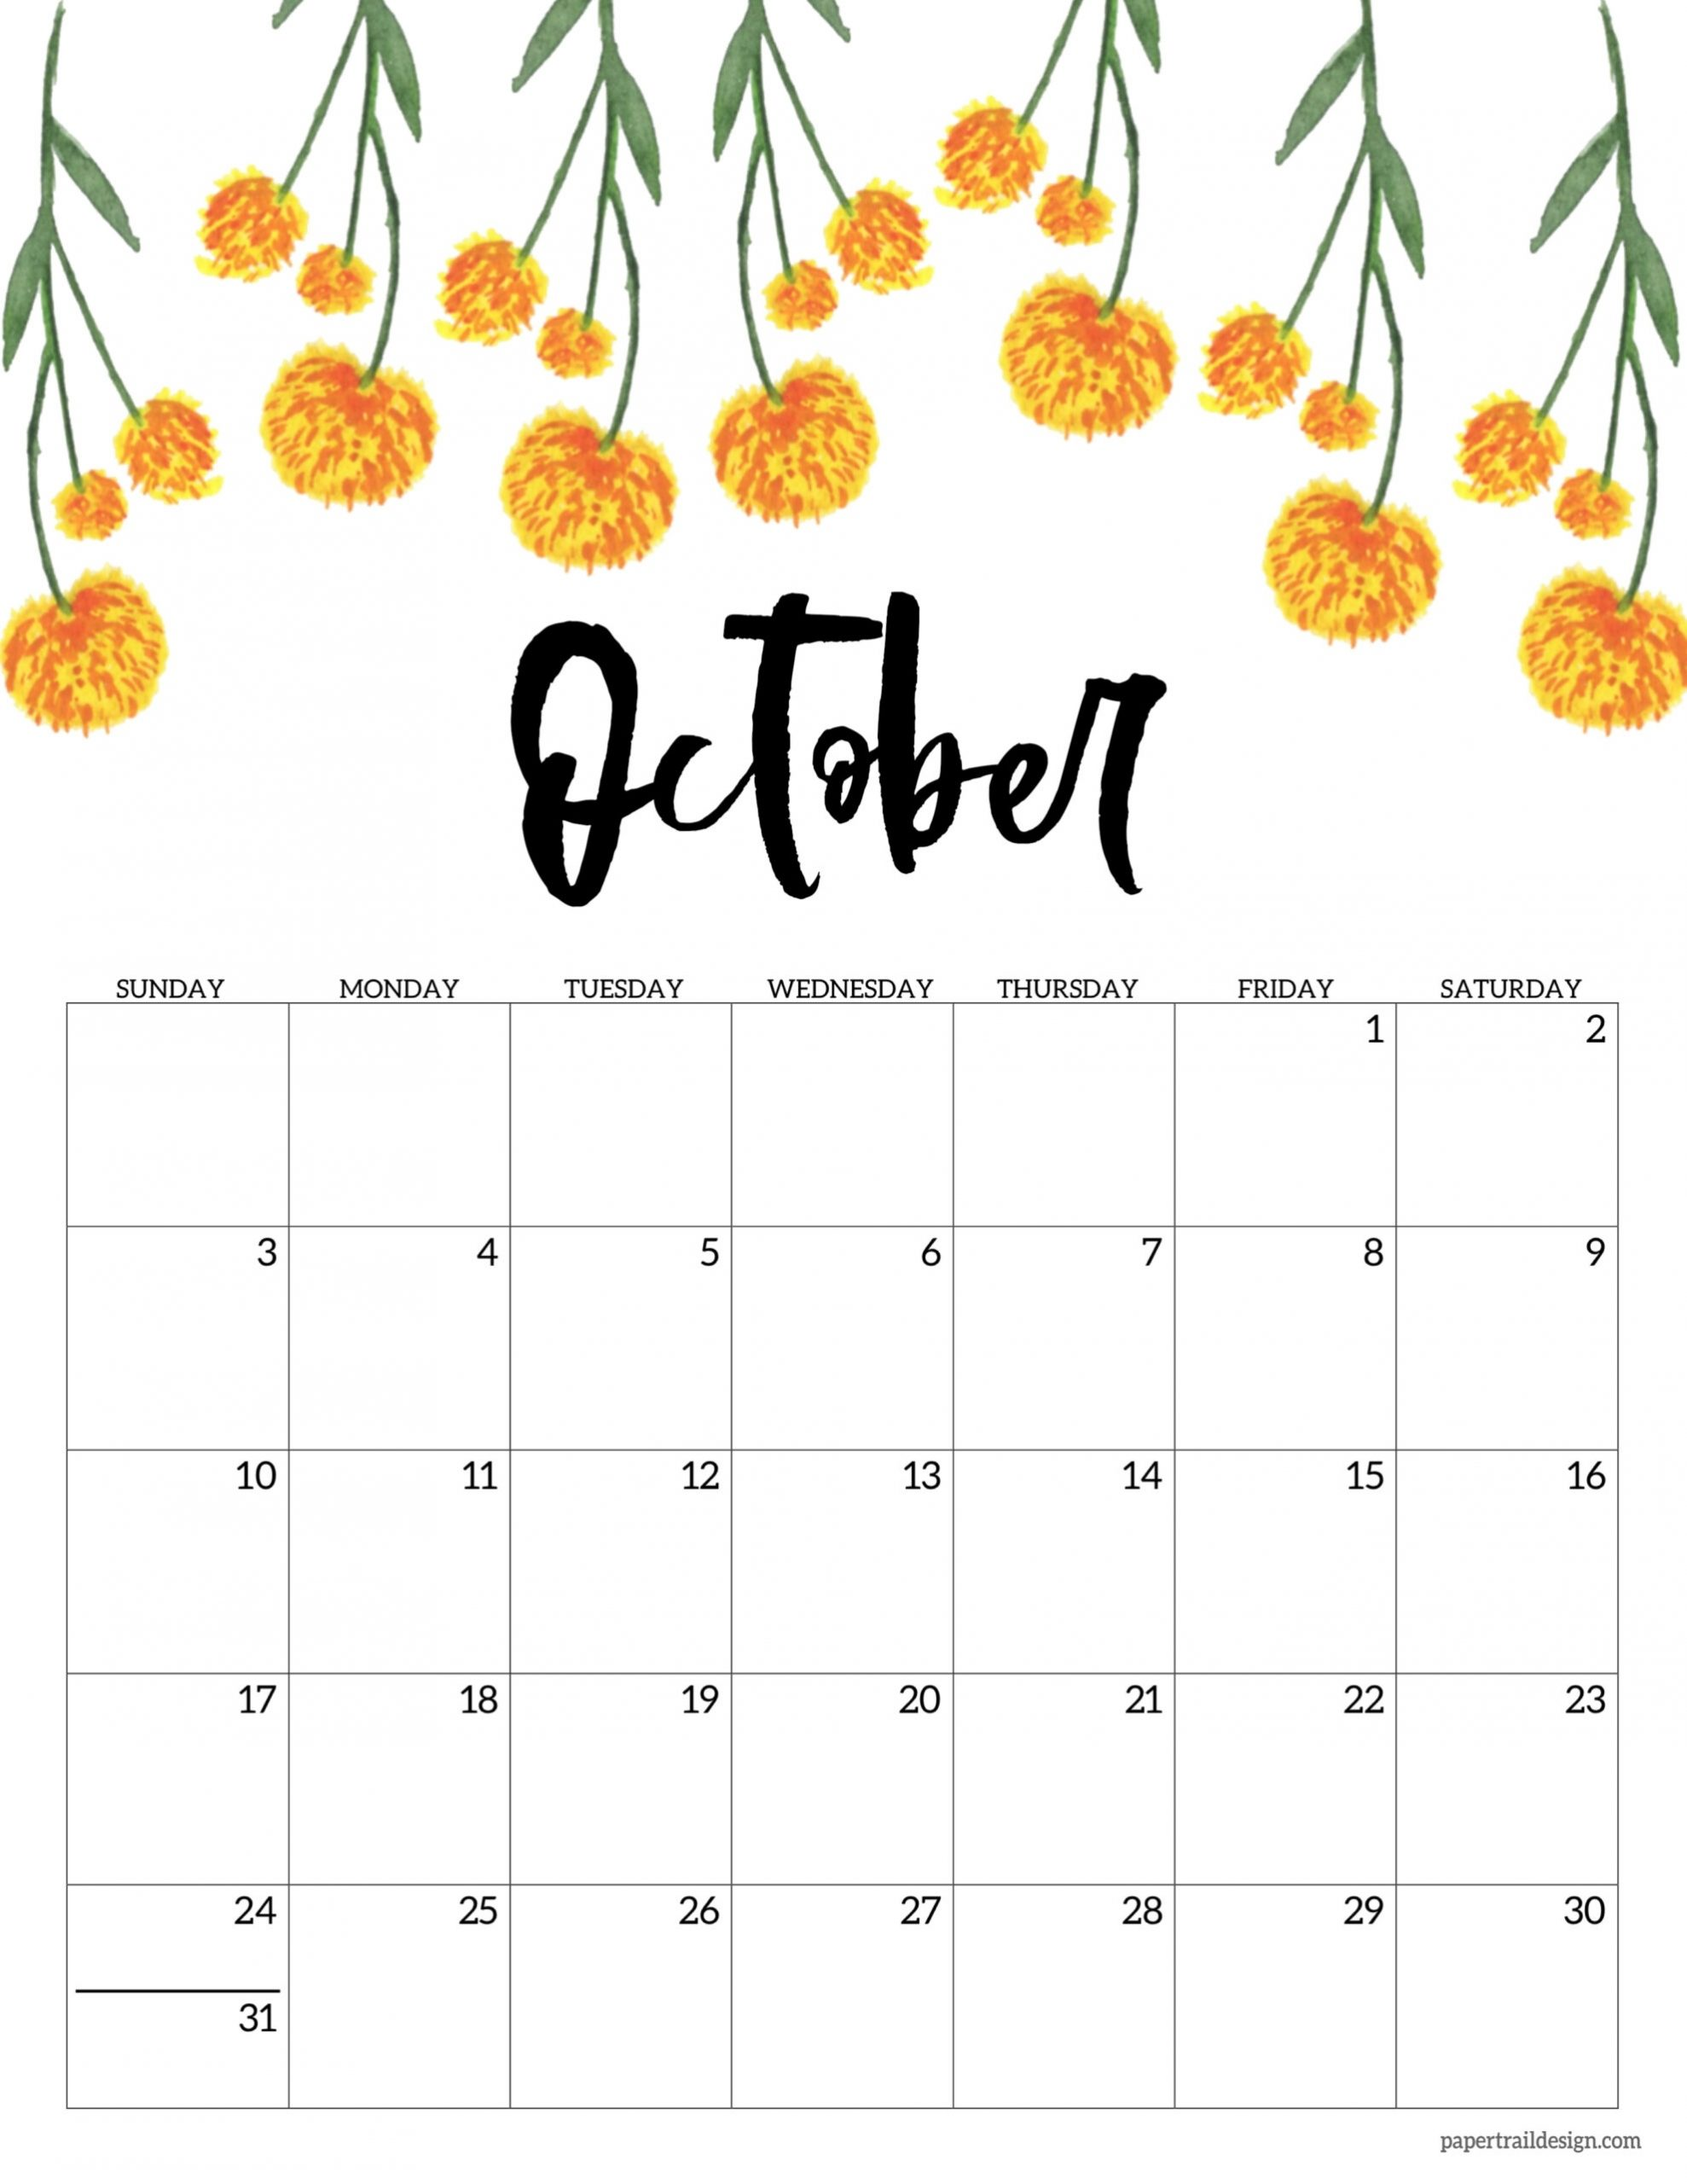 Take October 2021 Calendar To Color And Print